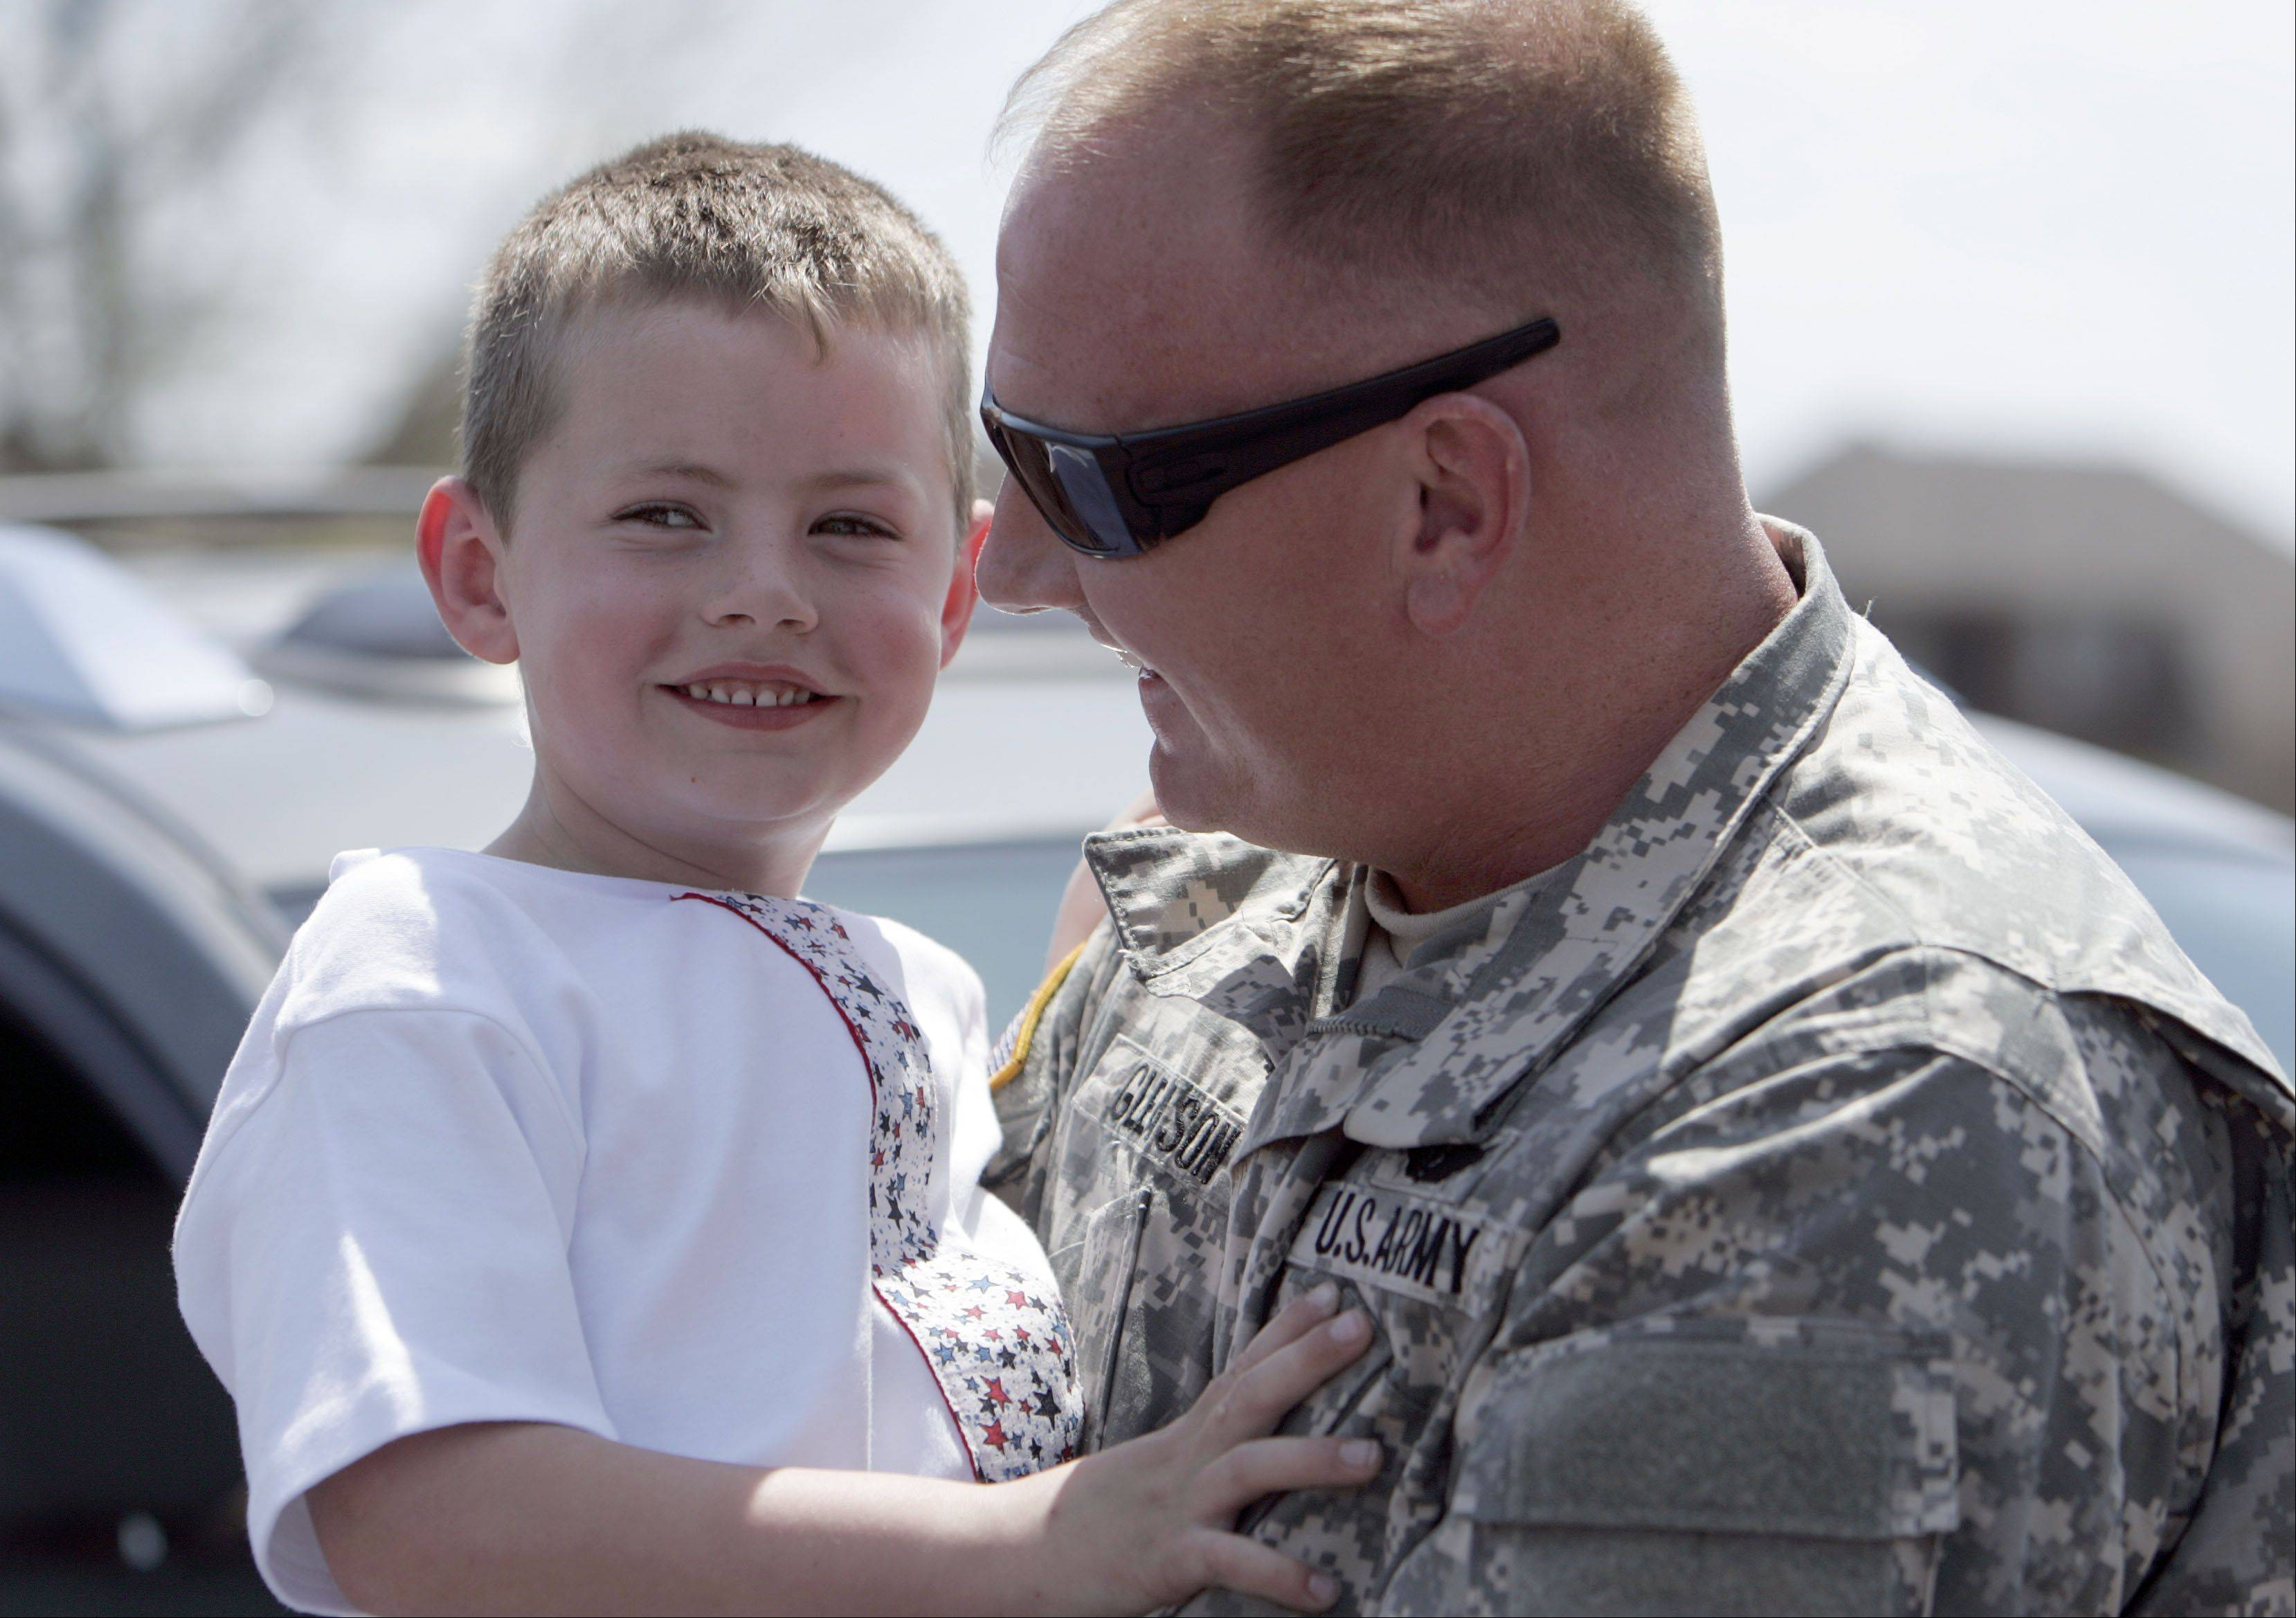 T.J. Gleason, 5, enjoys a moment with his dad, Tim, at Corron Elementary School in South Elgin Wednesday. The elder Gleason, a sergeant in the Army National Guard, just returned from a deployment to Kuwait.